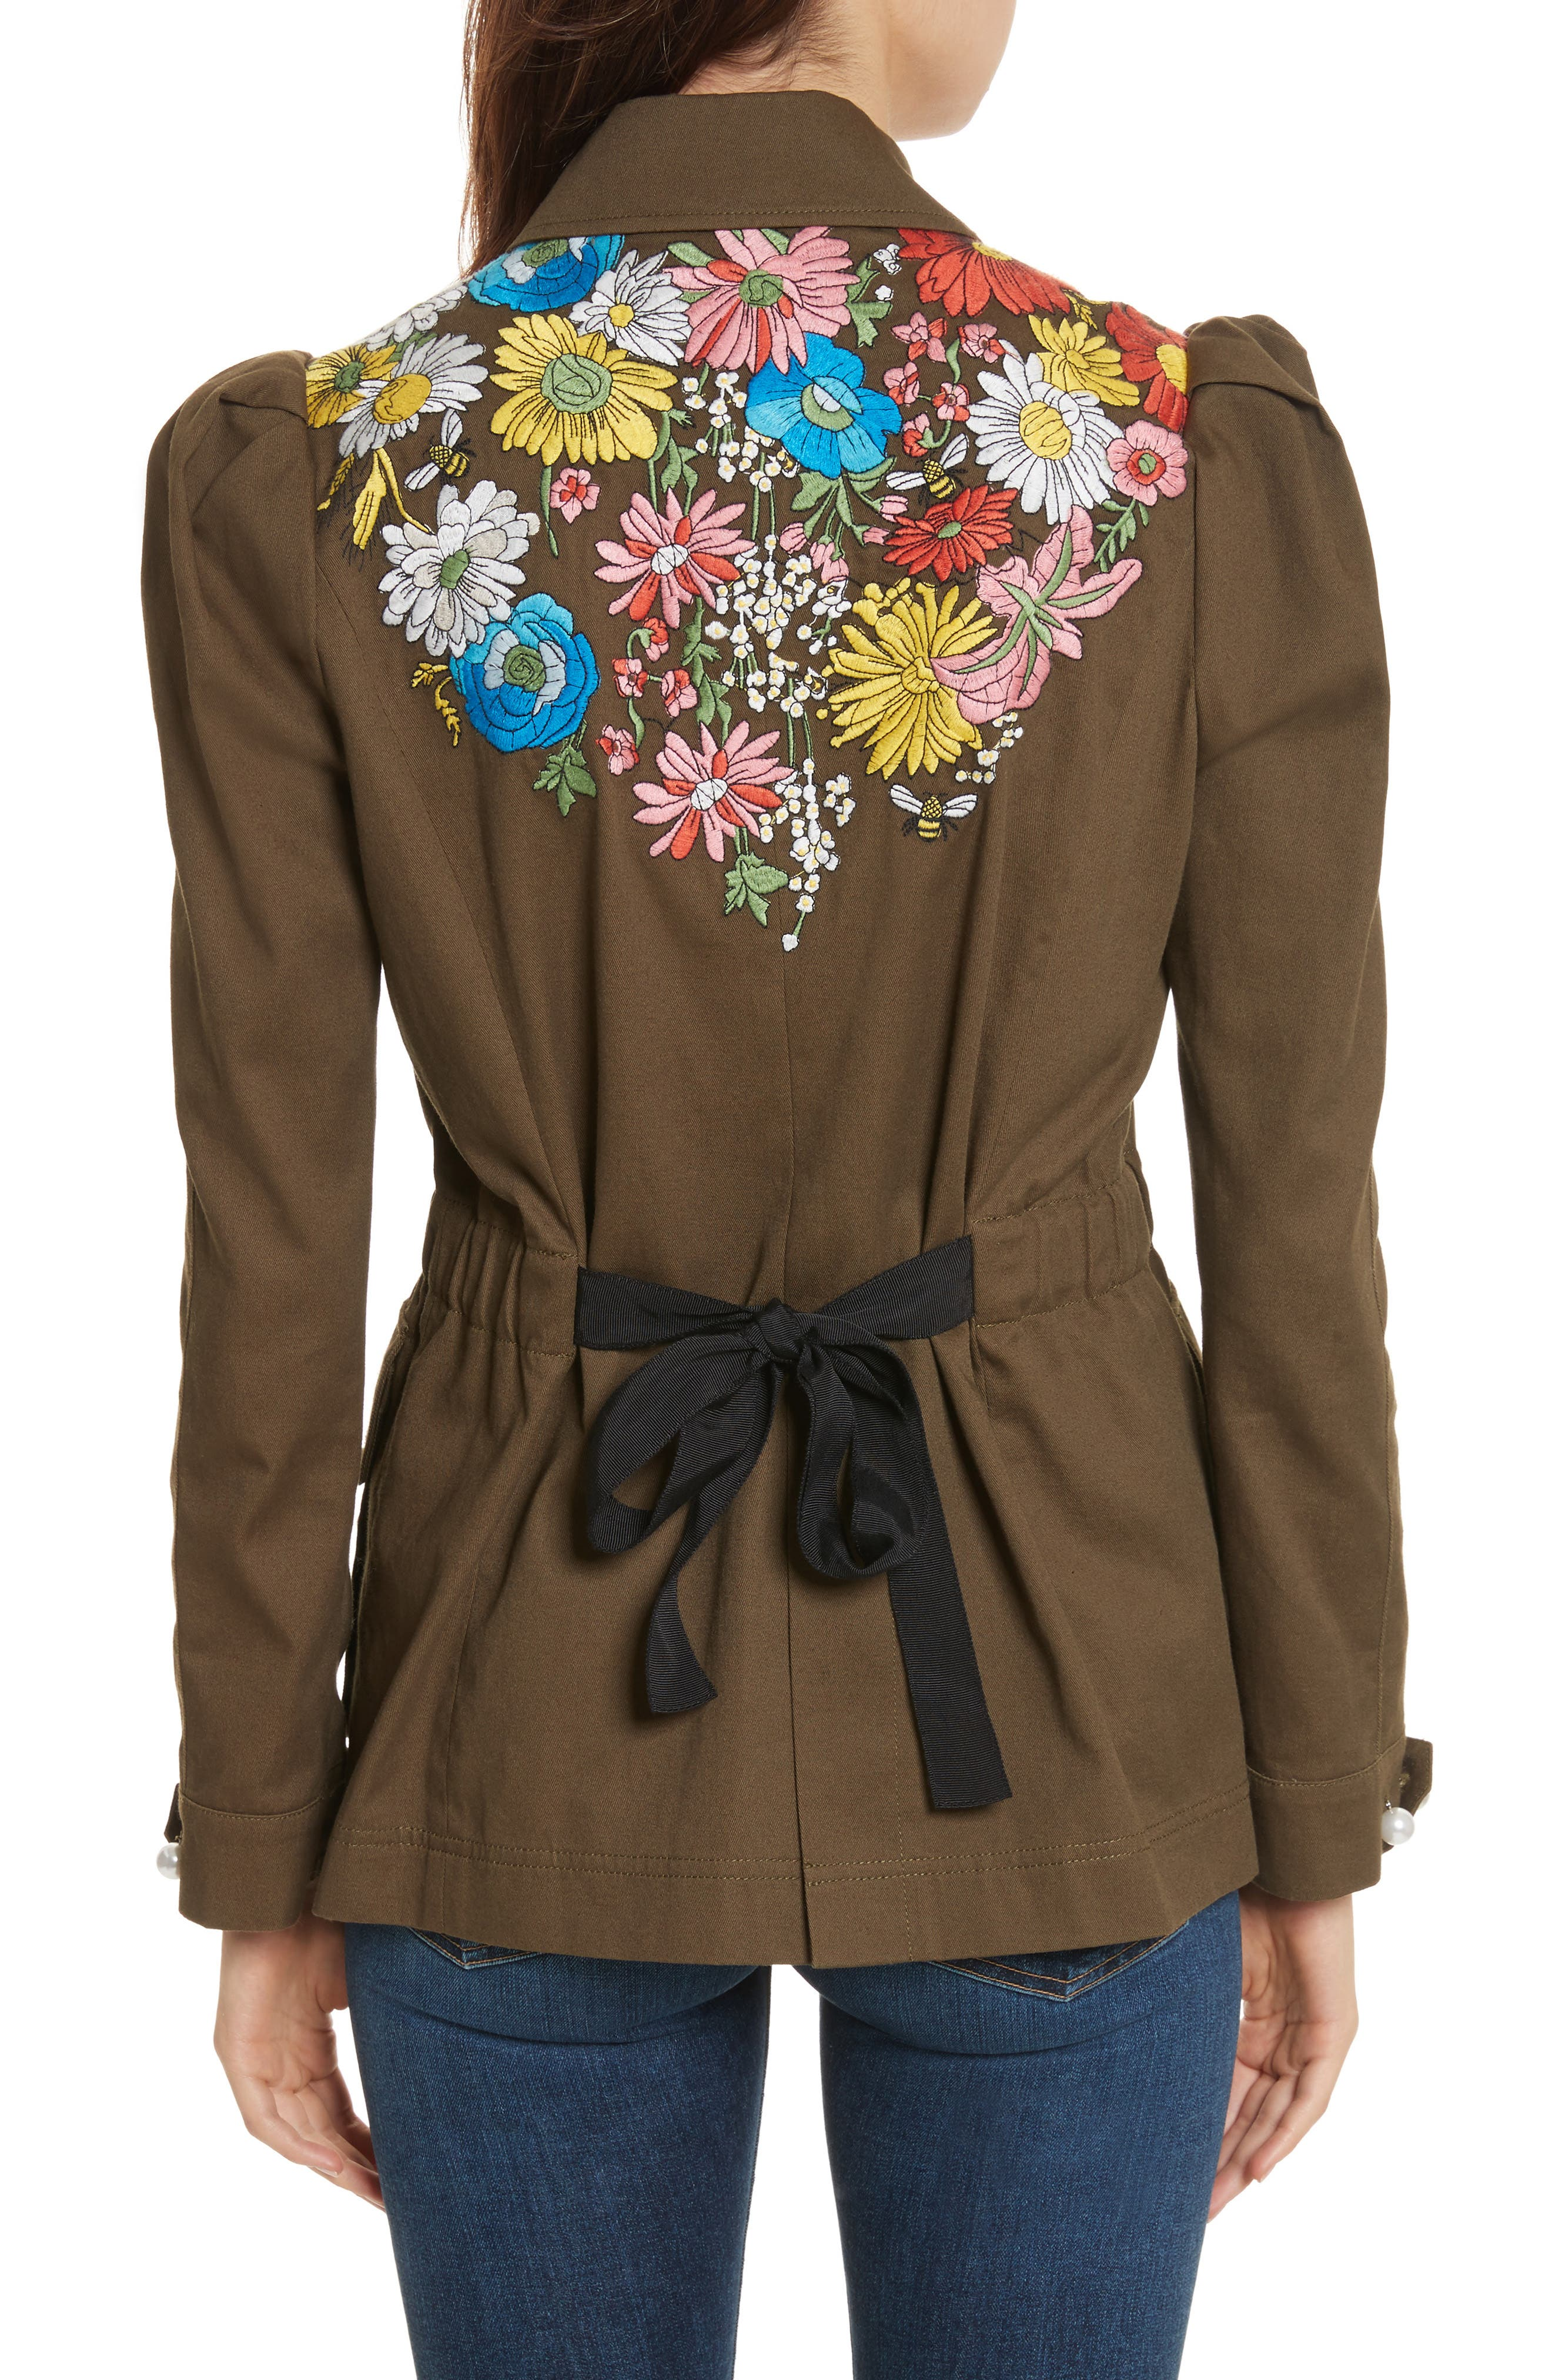 Huxley Floral Embroidered Safari Jacket,                             Alternate thumbnail 2, color,                             Army